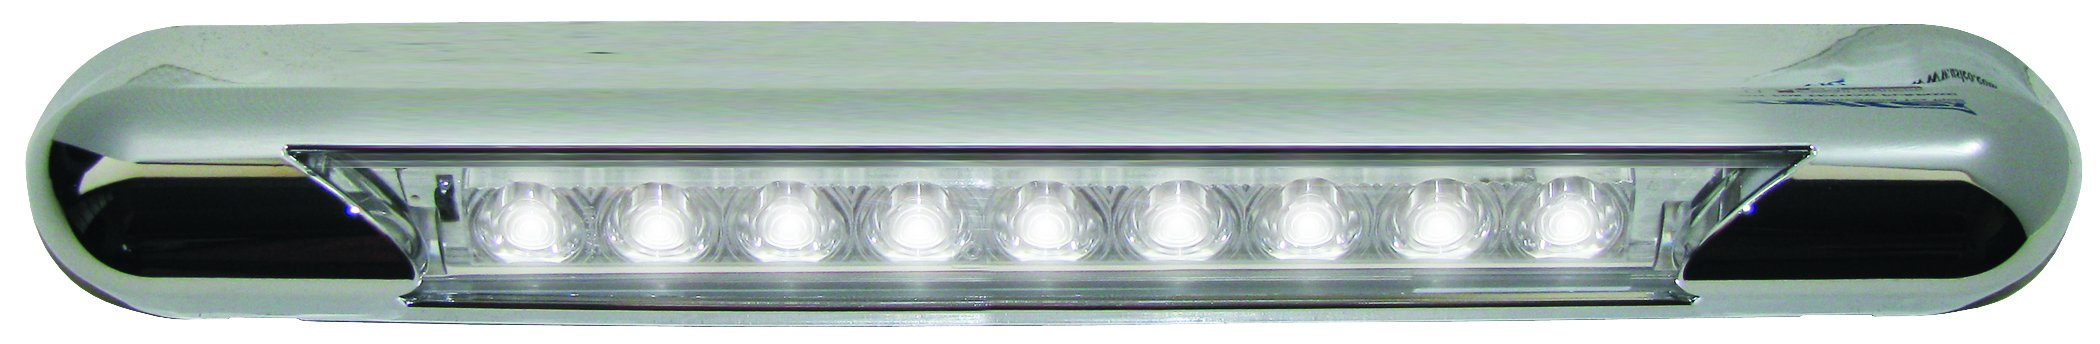 Optronics ILL70CBAWNP White LED Interior Light by Optronics